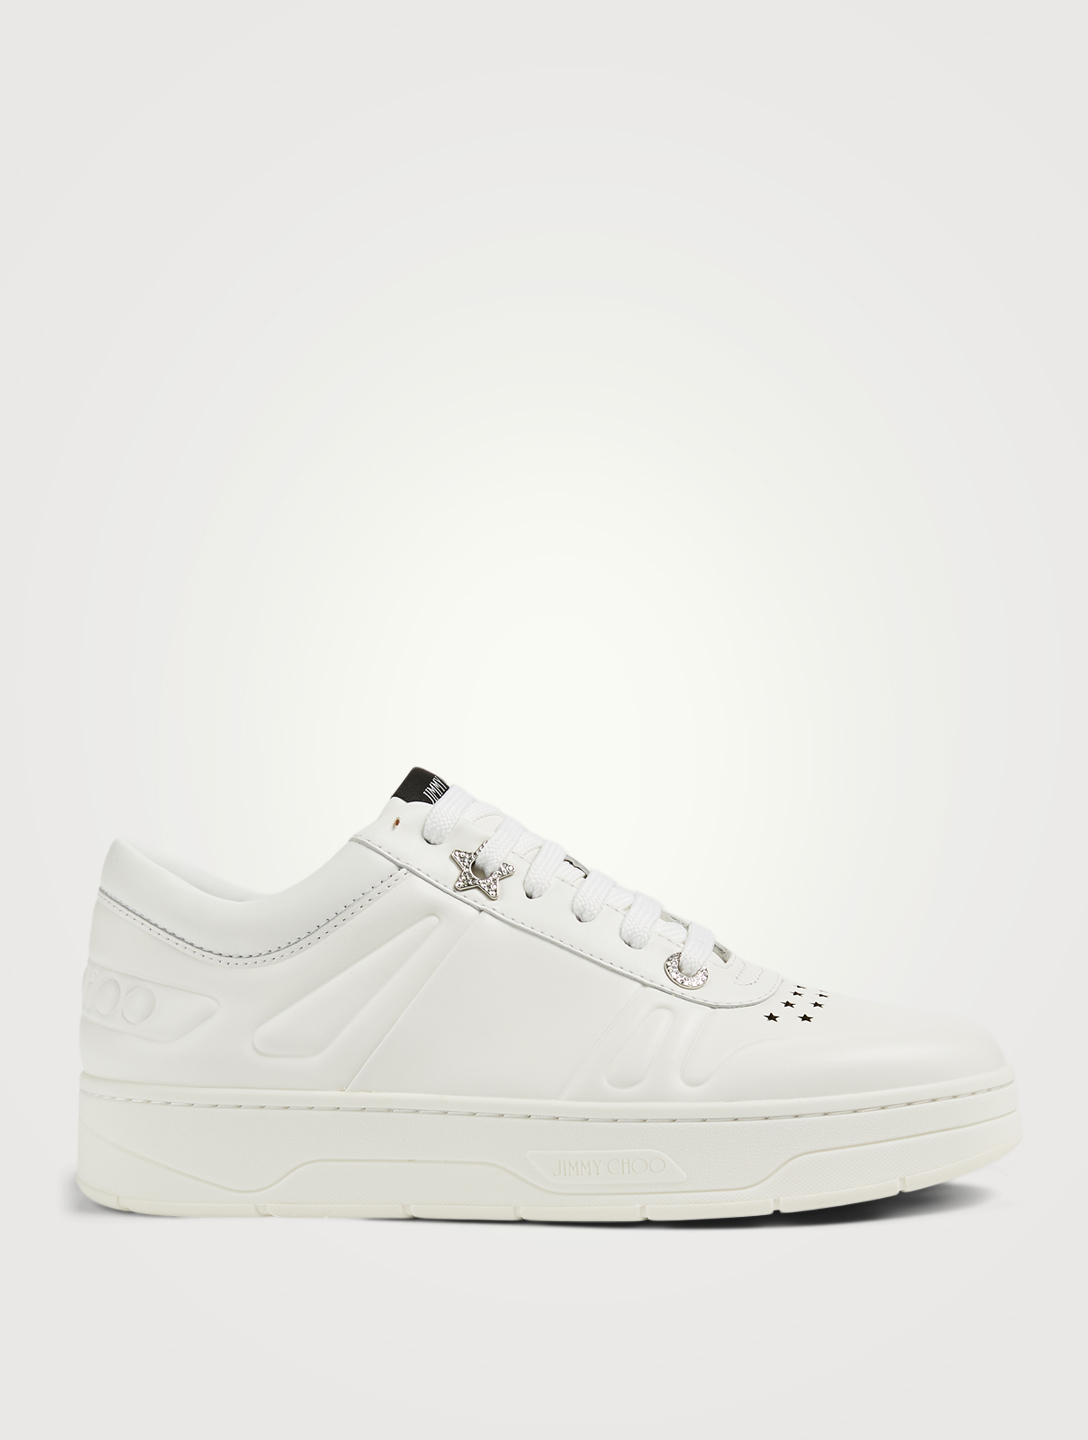 JIMMY CHOO Sneakers Hawaii/F en cuir Femmes Blanc